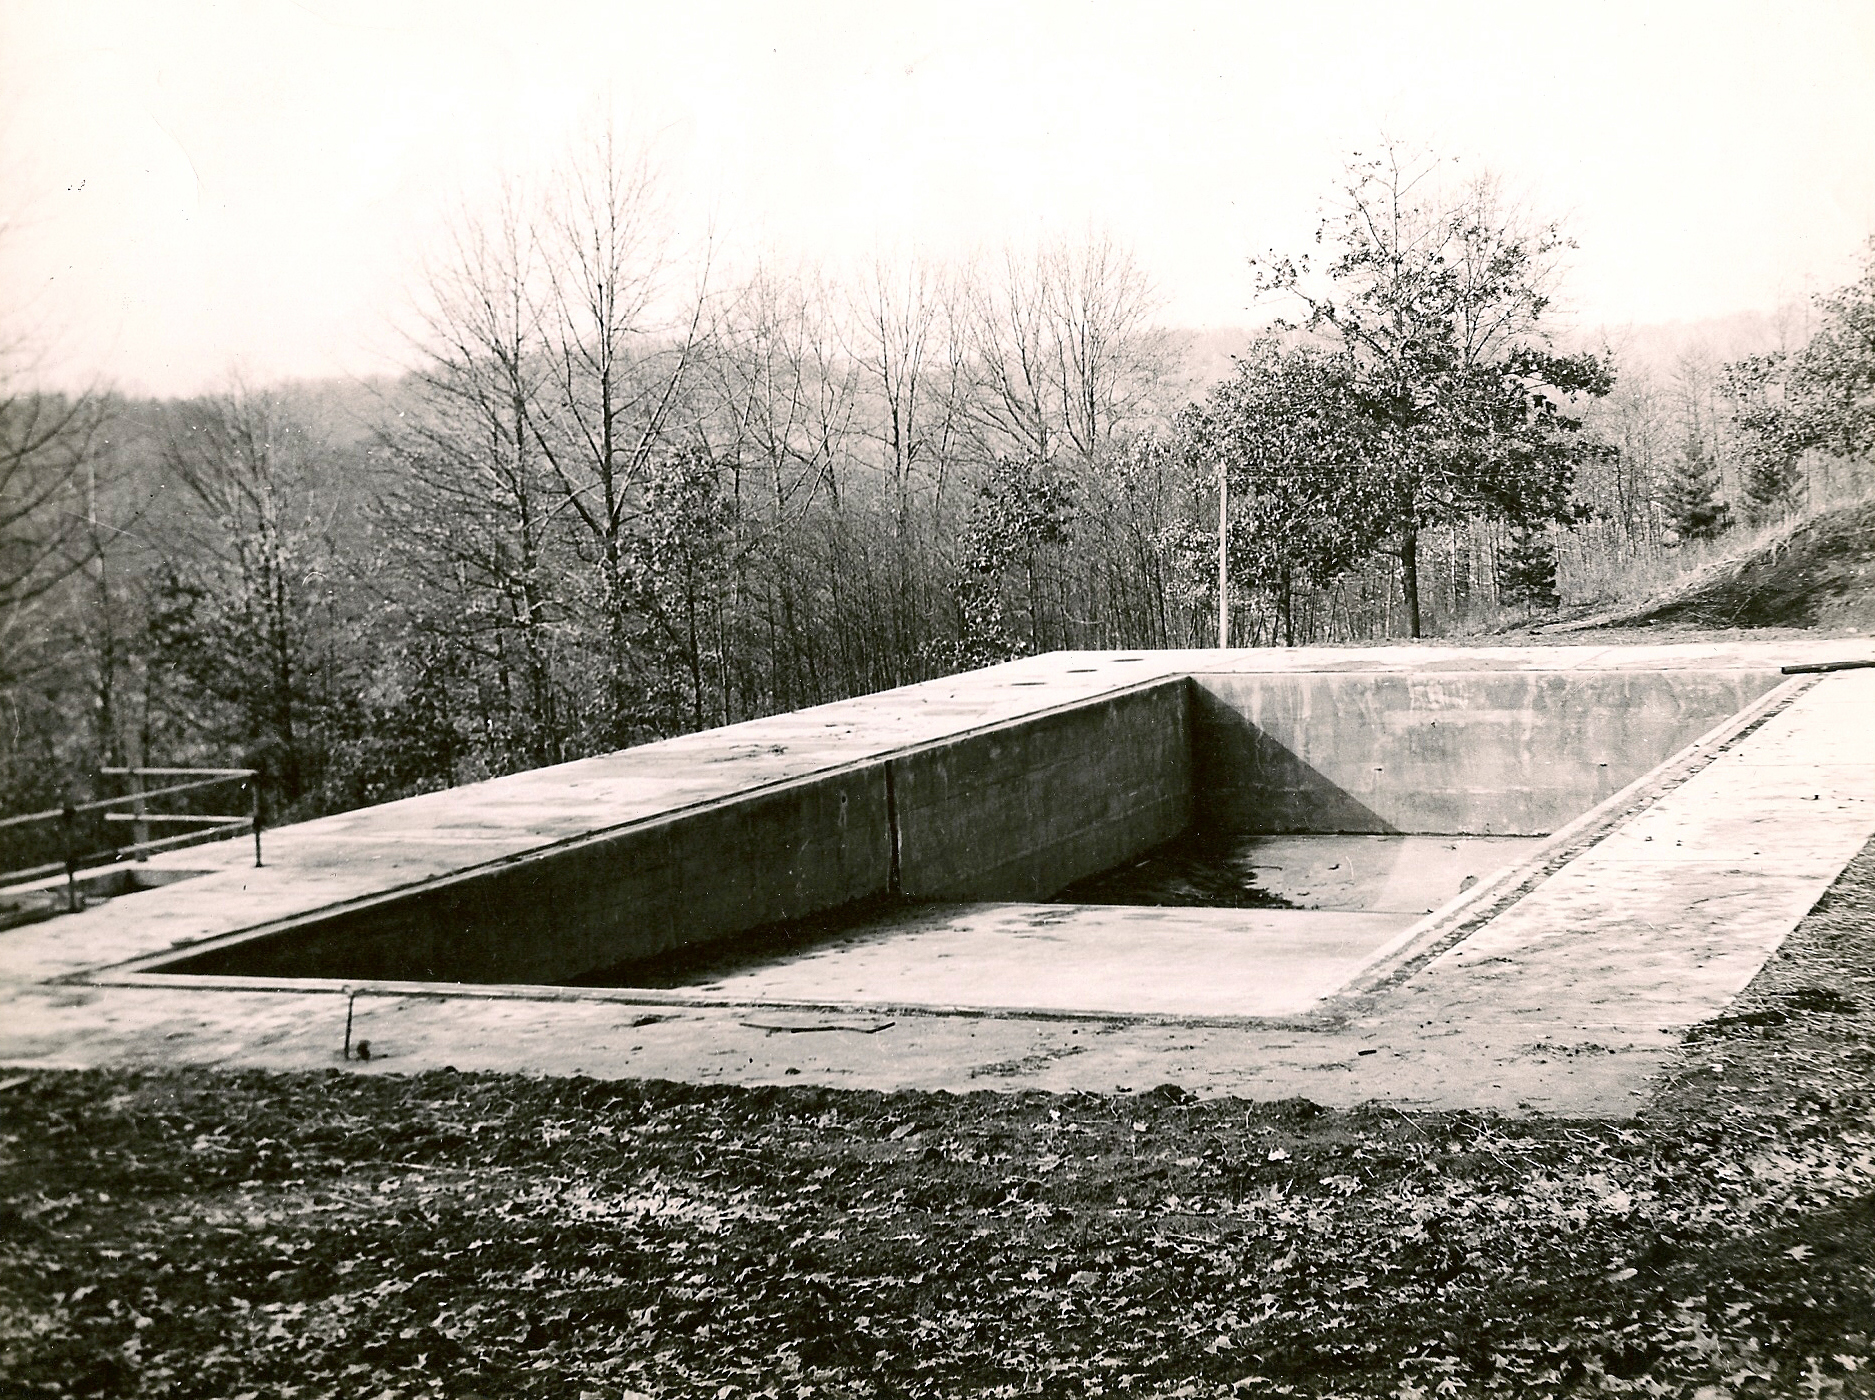 Pool construction in 1947